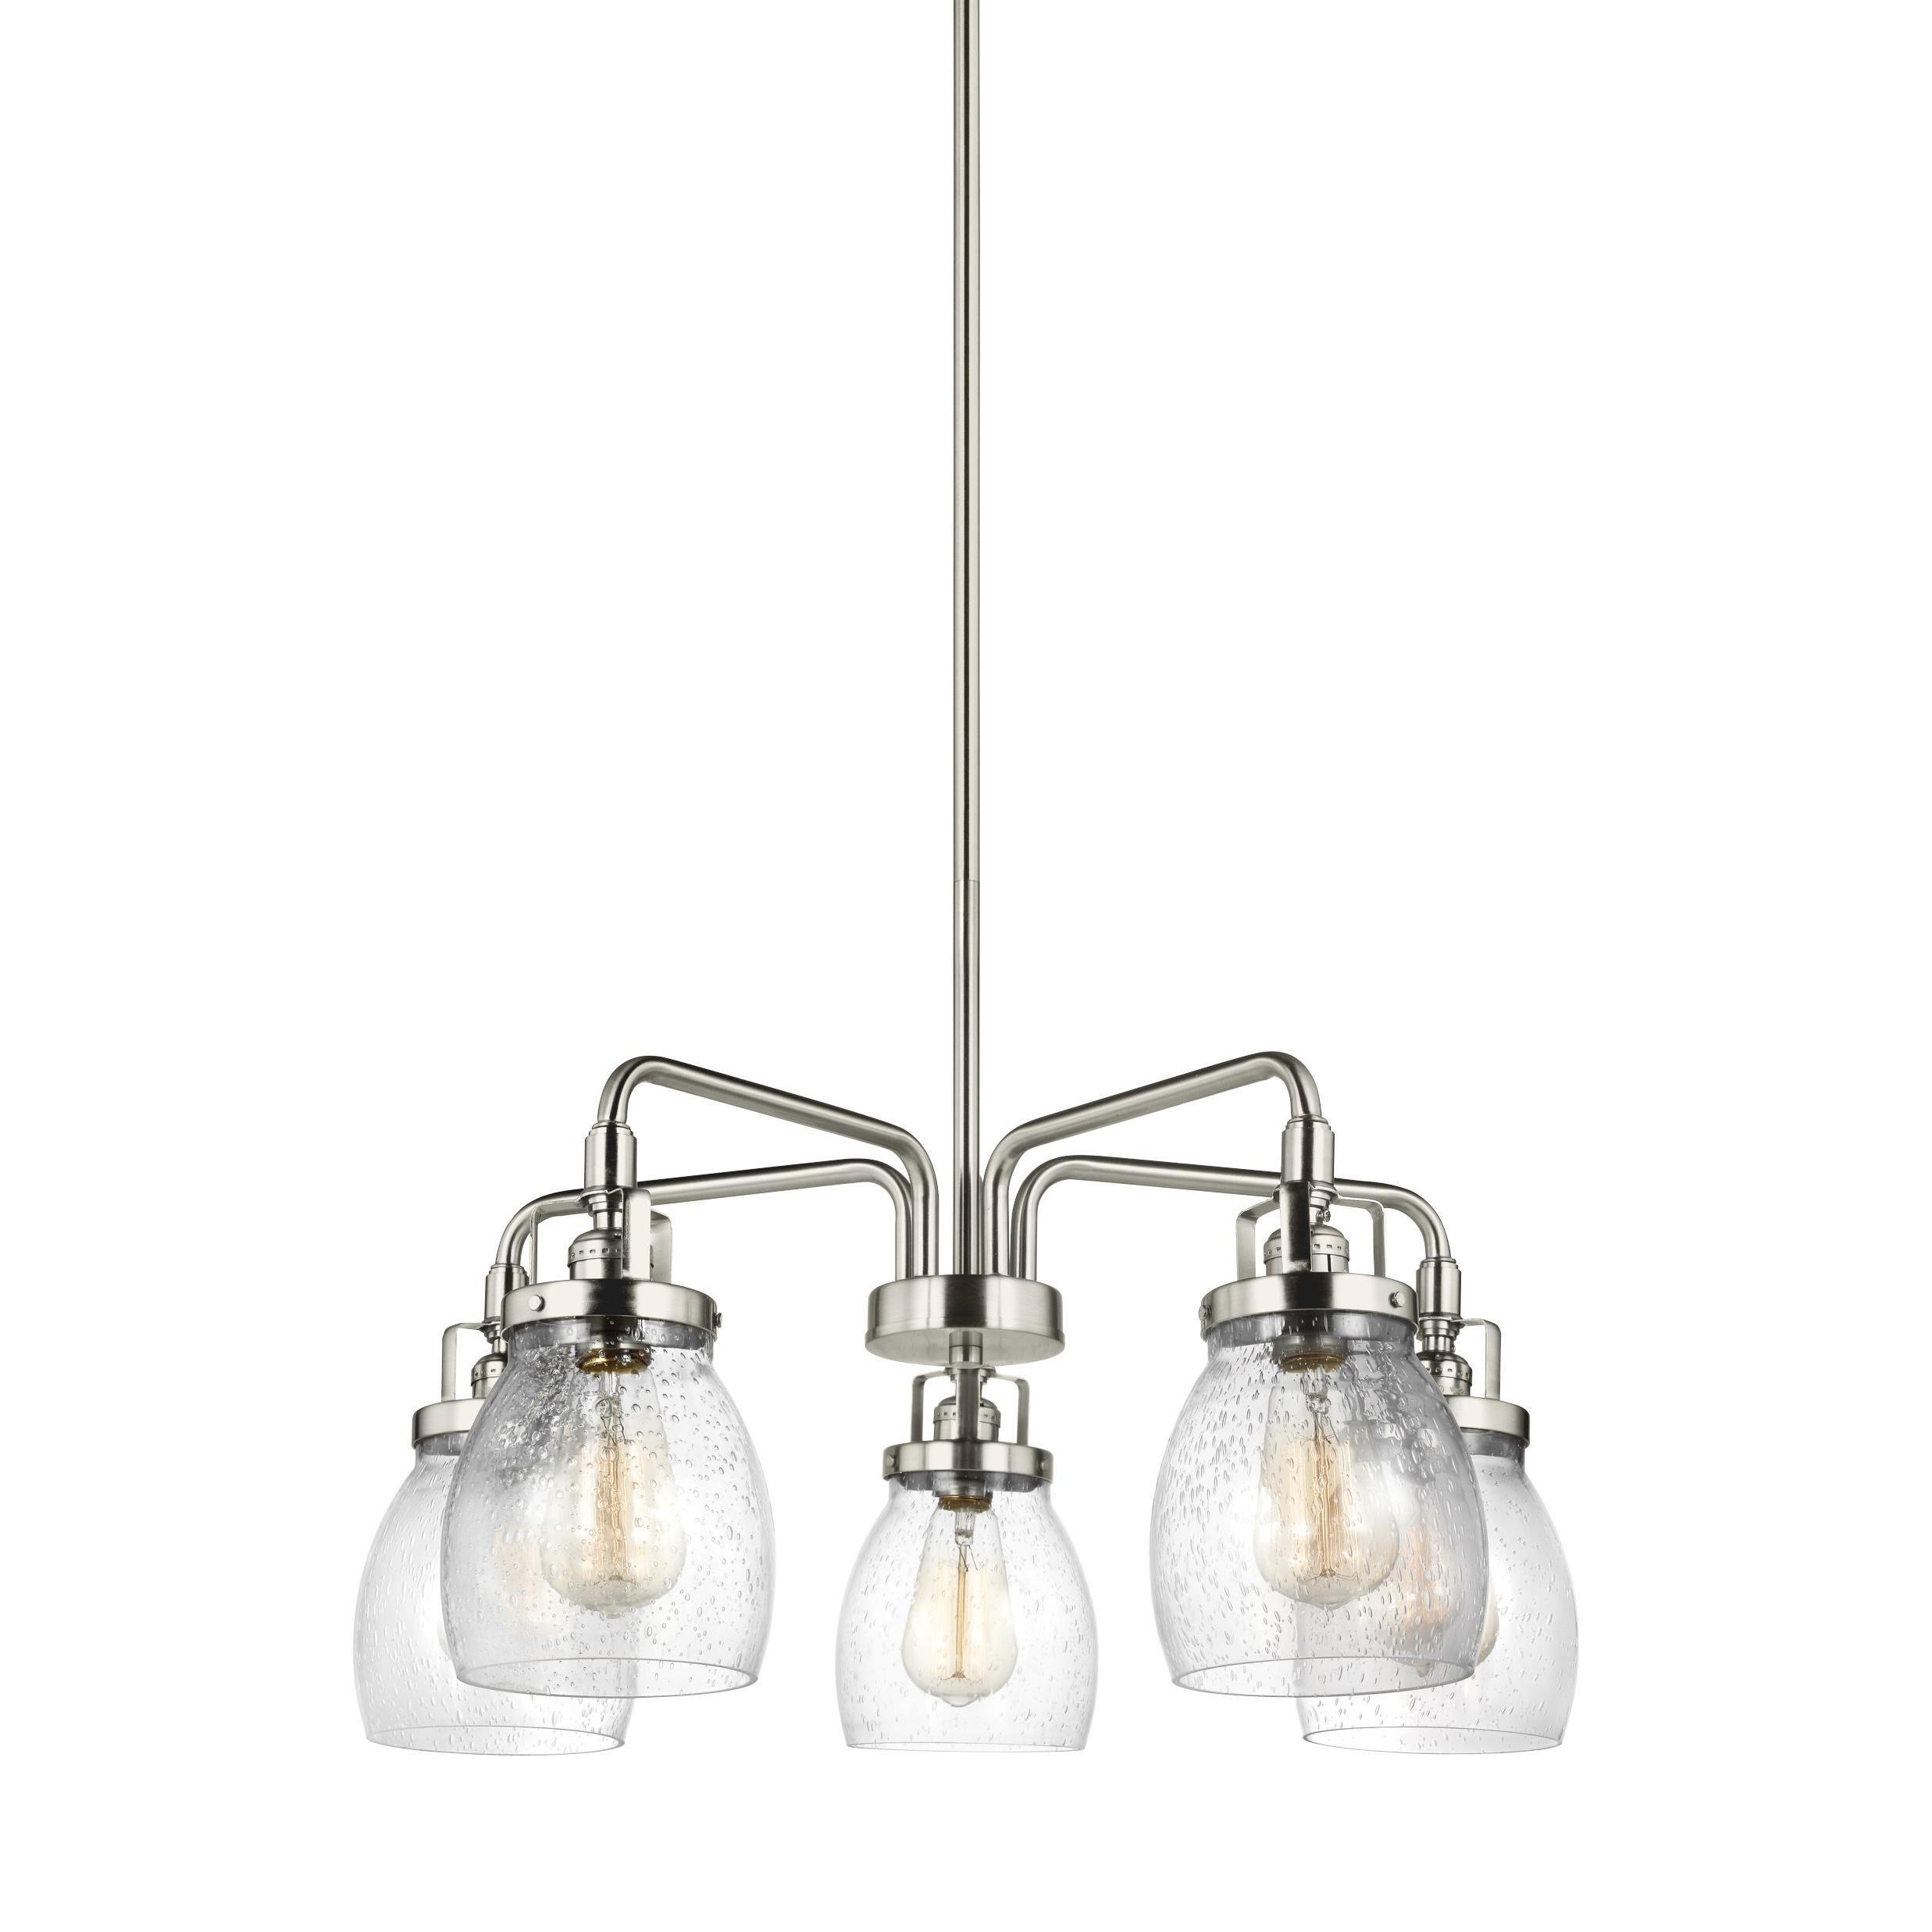 Sea gull belton 5 light brushed nickel chandelier free shipping sea gull belton 5 light brushed nickel chandelier free shipping today overstock 20890609 arubaitofo Choice Image